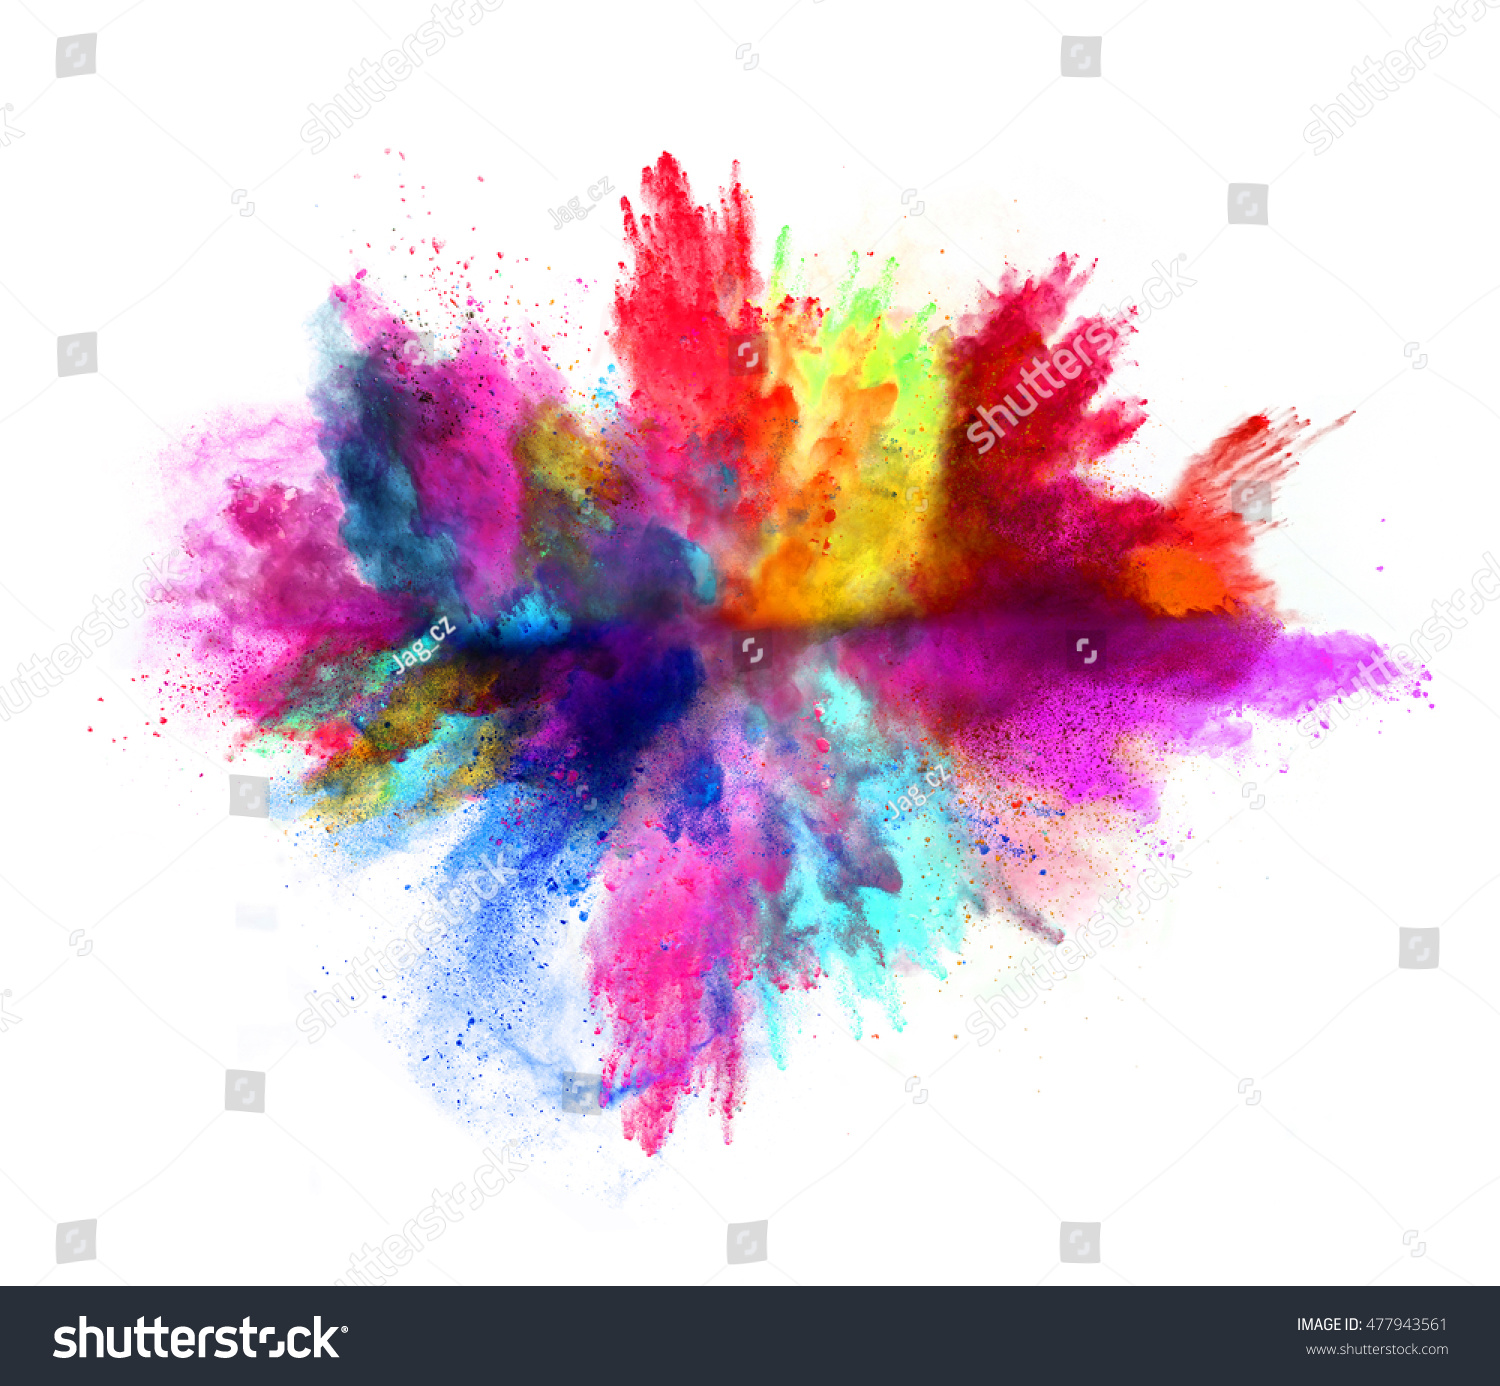 Explosion of colored powder, isolated on white background #477943561 - 123PhotoFree.com